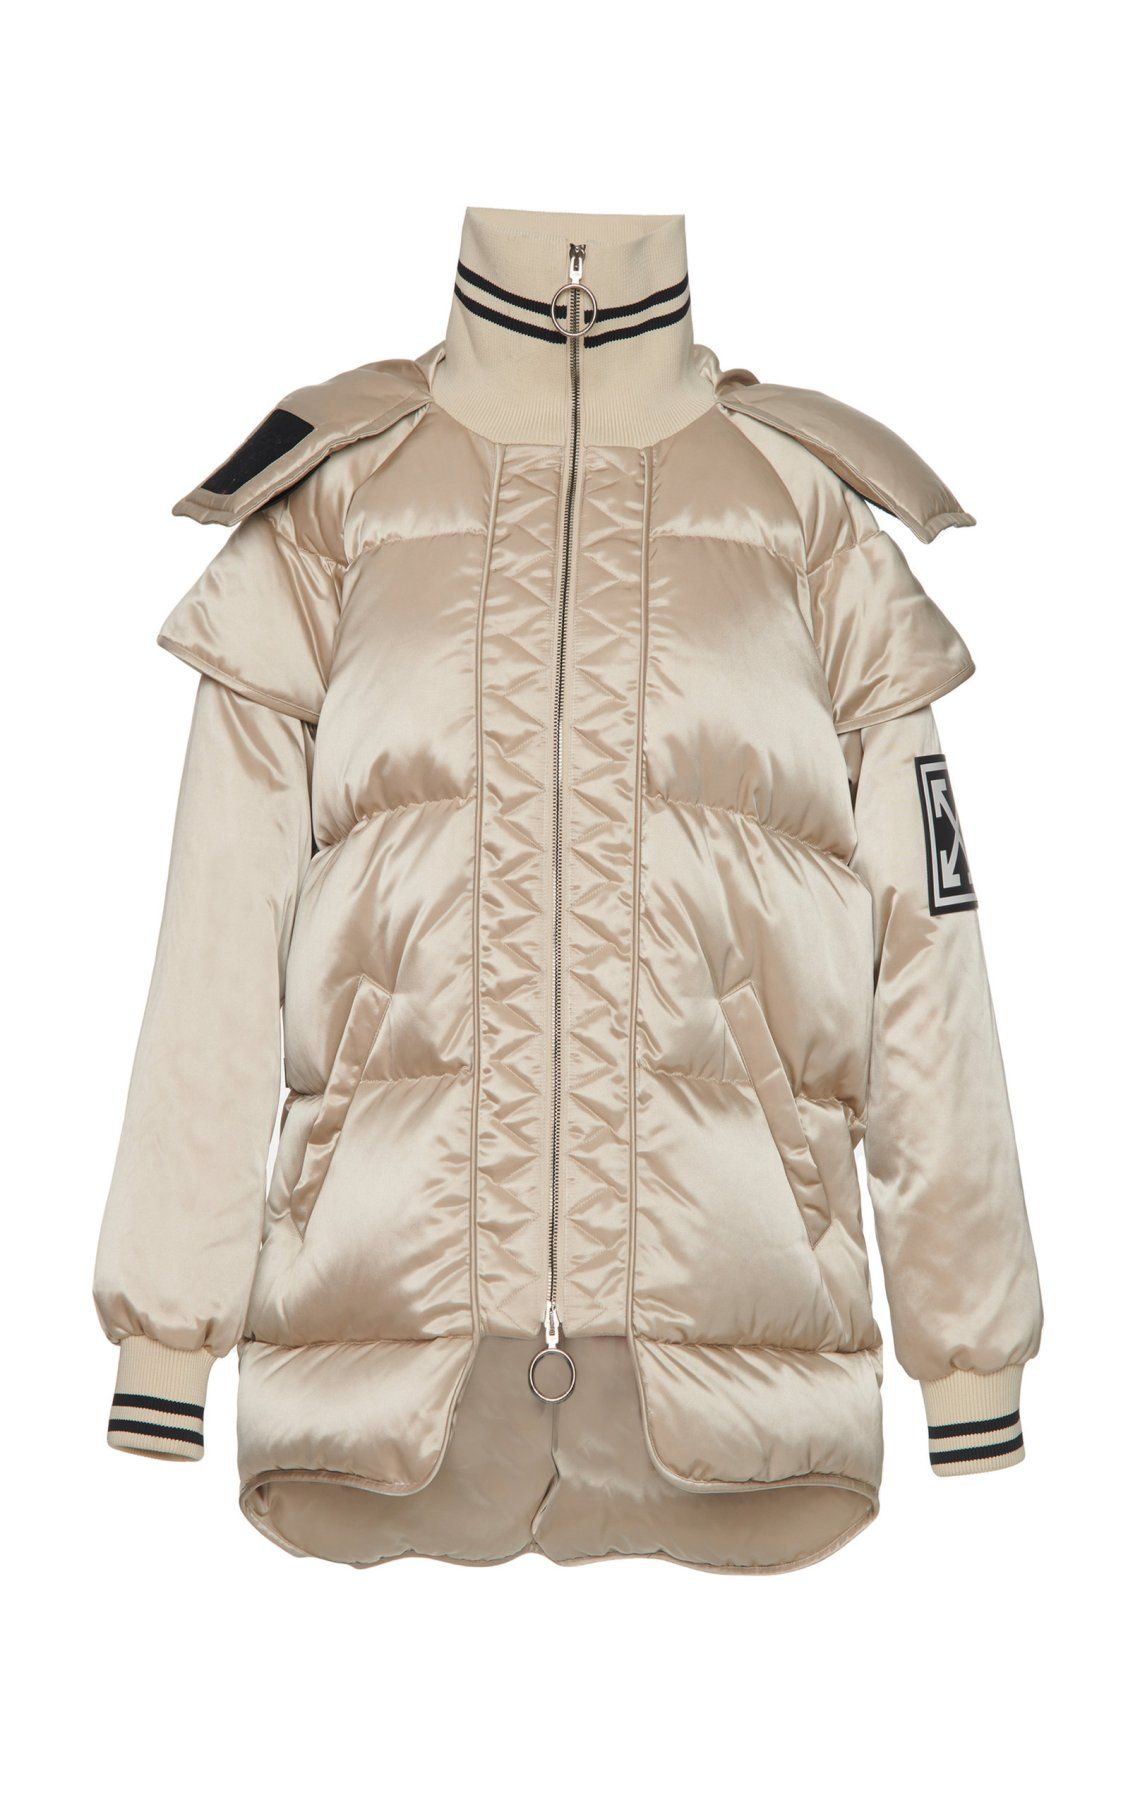 Technical HighNeck Puffer Coat by OffWhite c/o Virgil